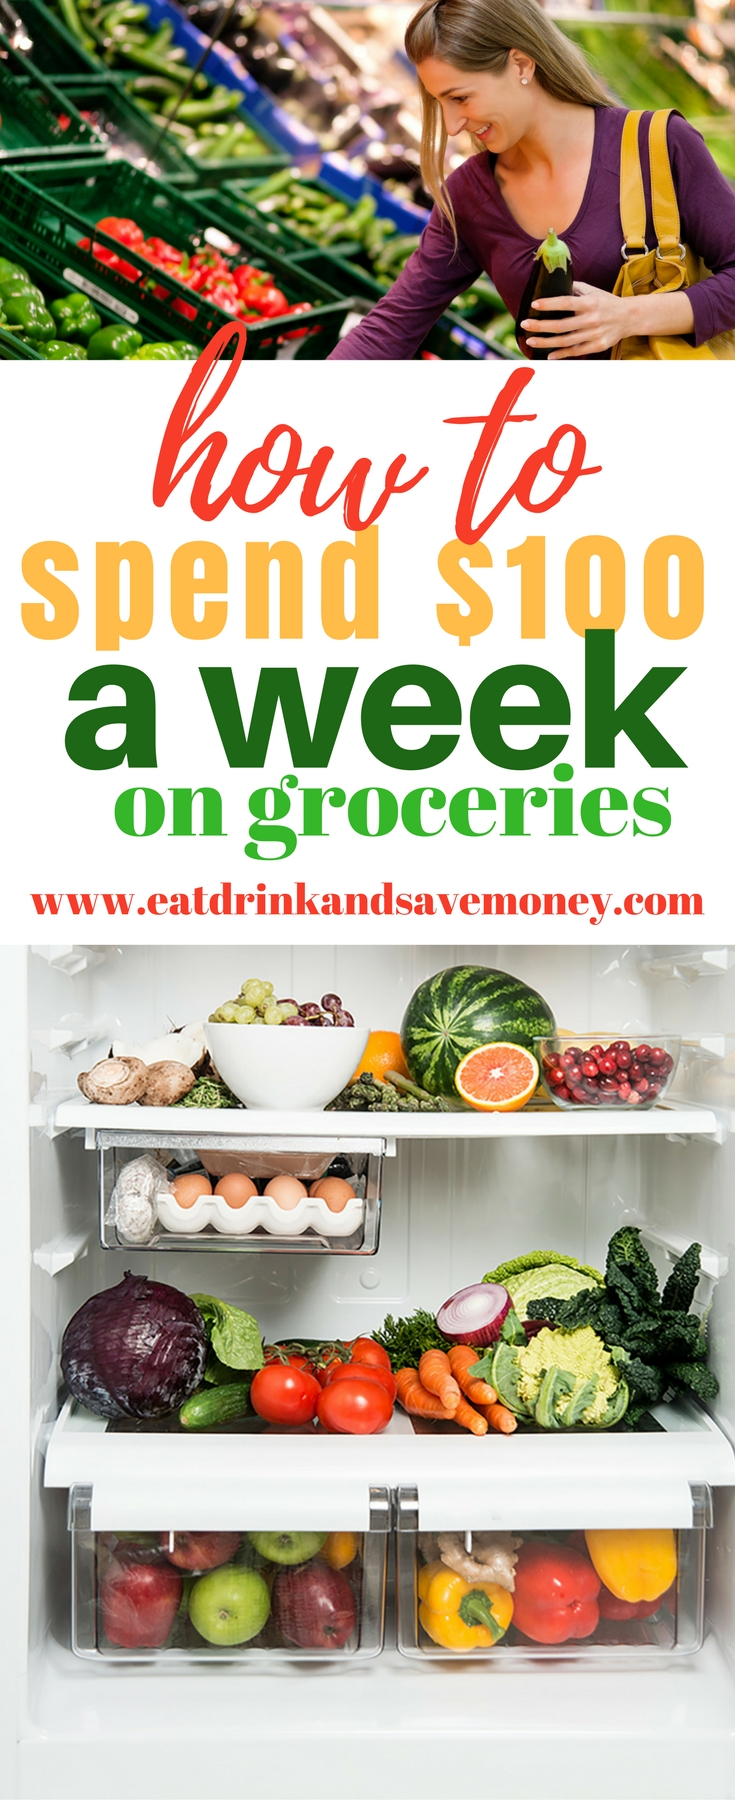 How to spend $100 a week on groceries #groceries #savemoney #budget